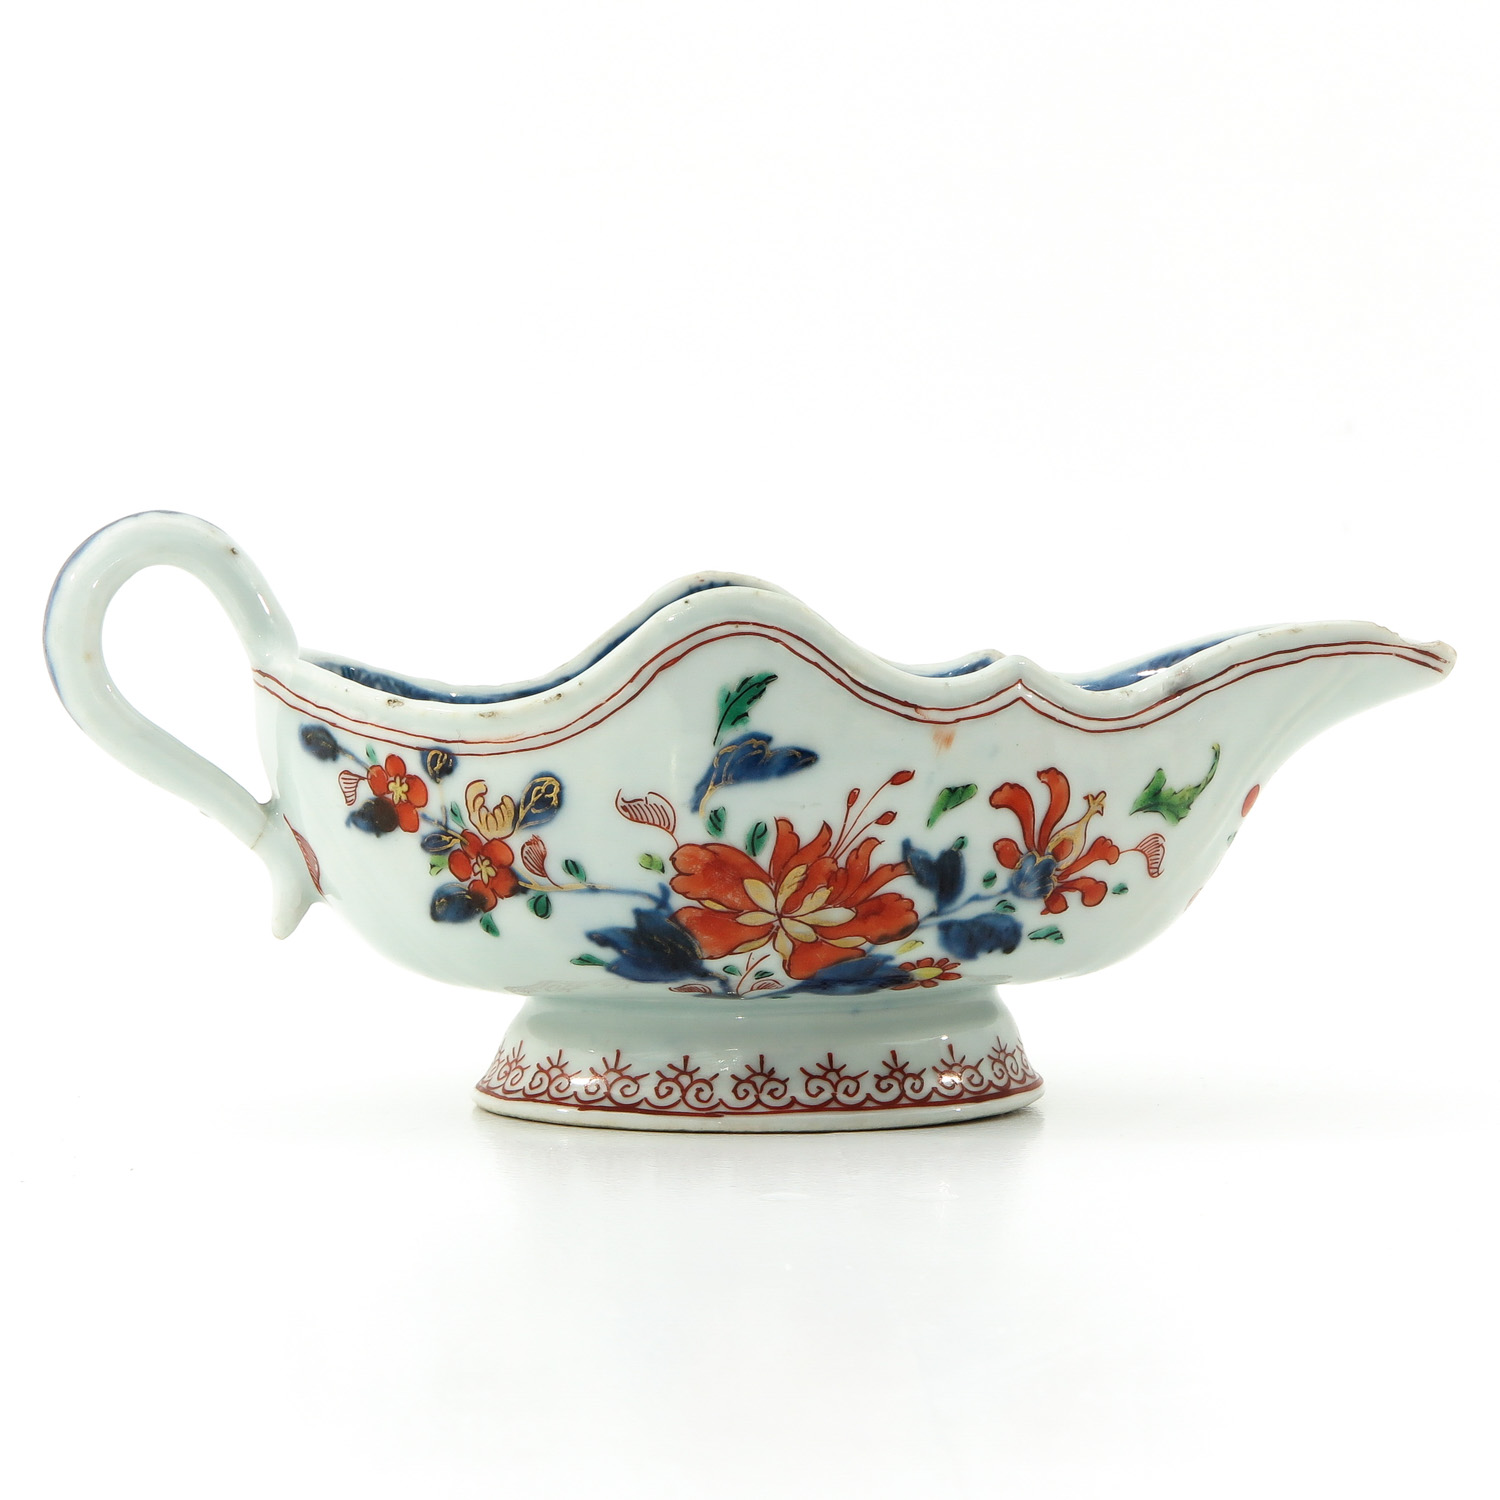 An Imari Plate and Gravy Boat - Image 3 of 10